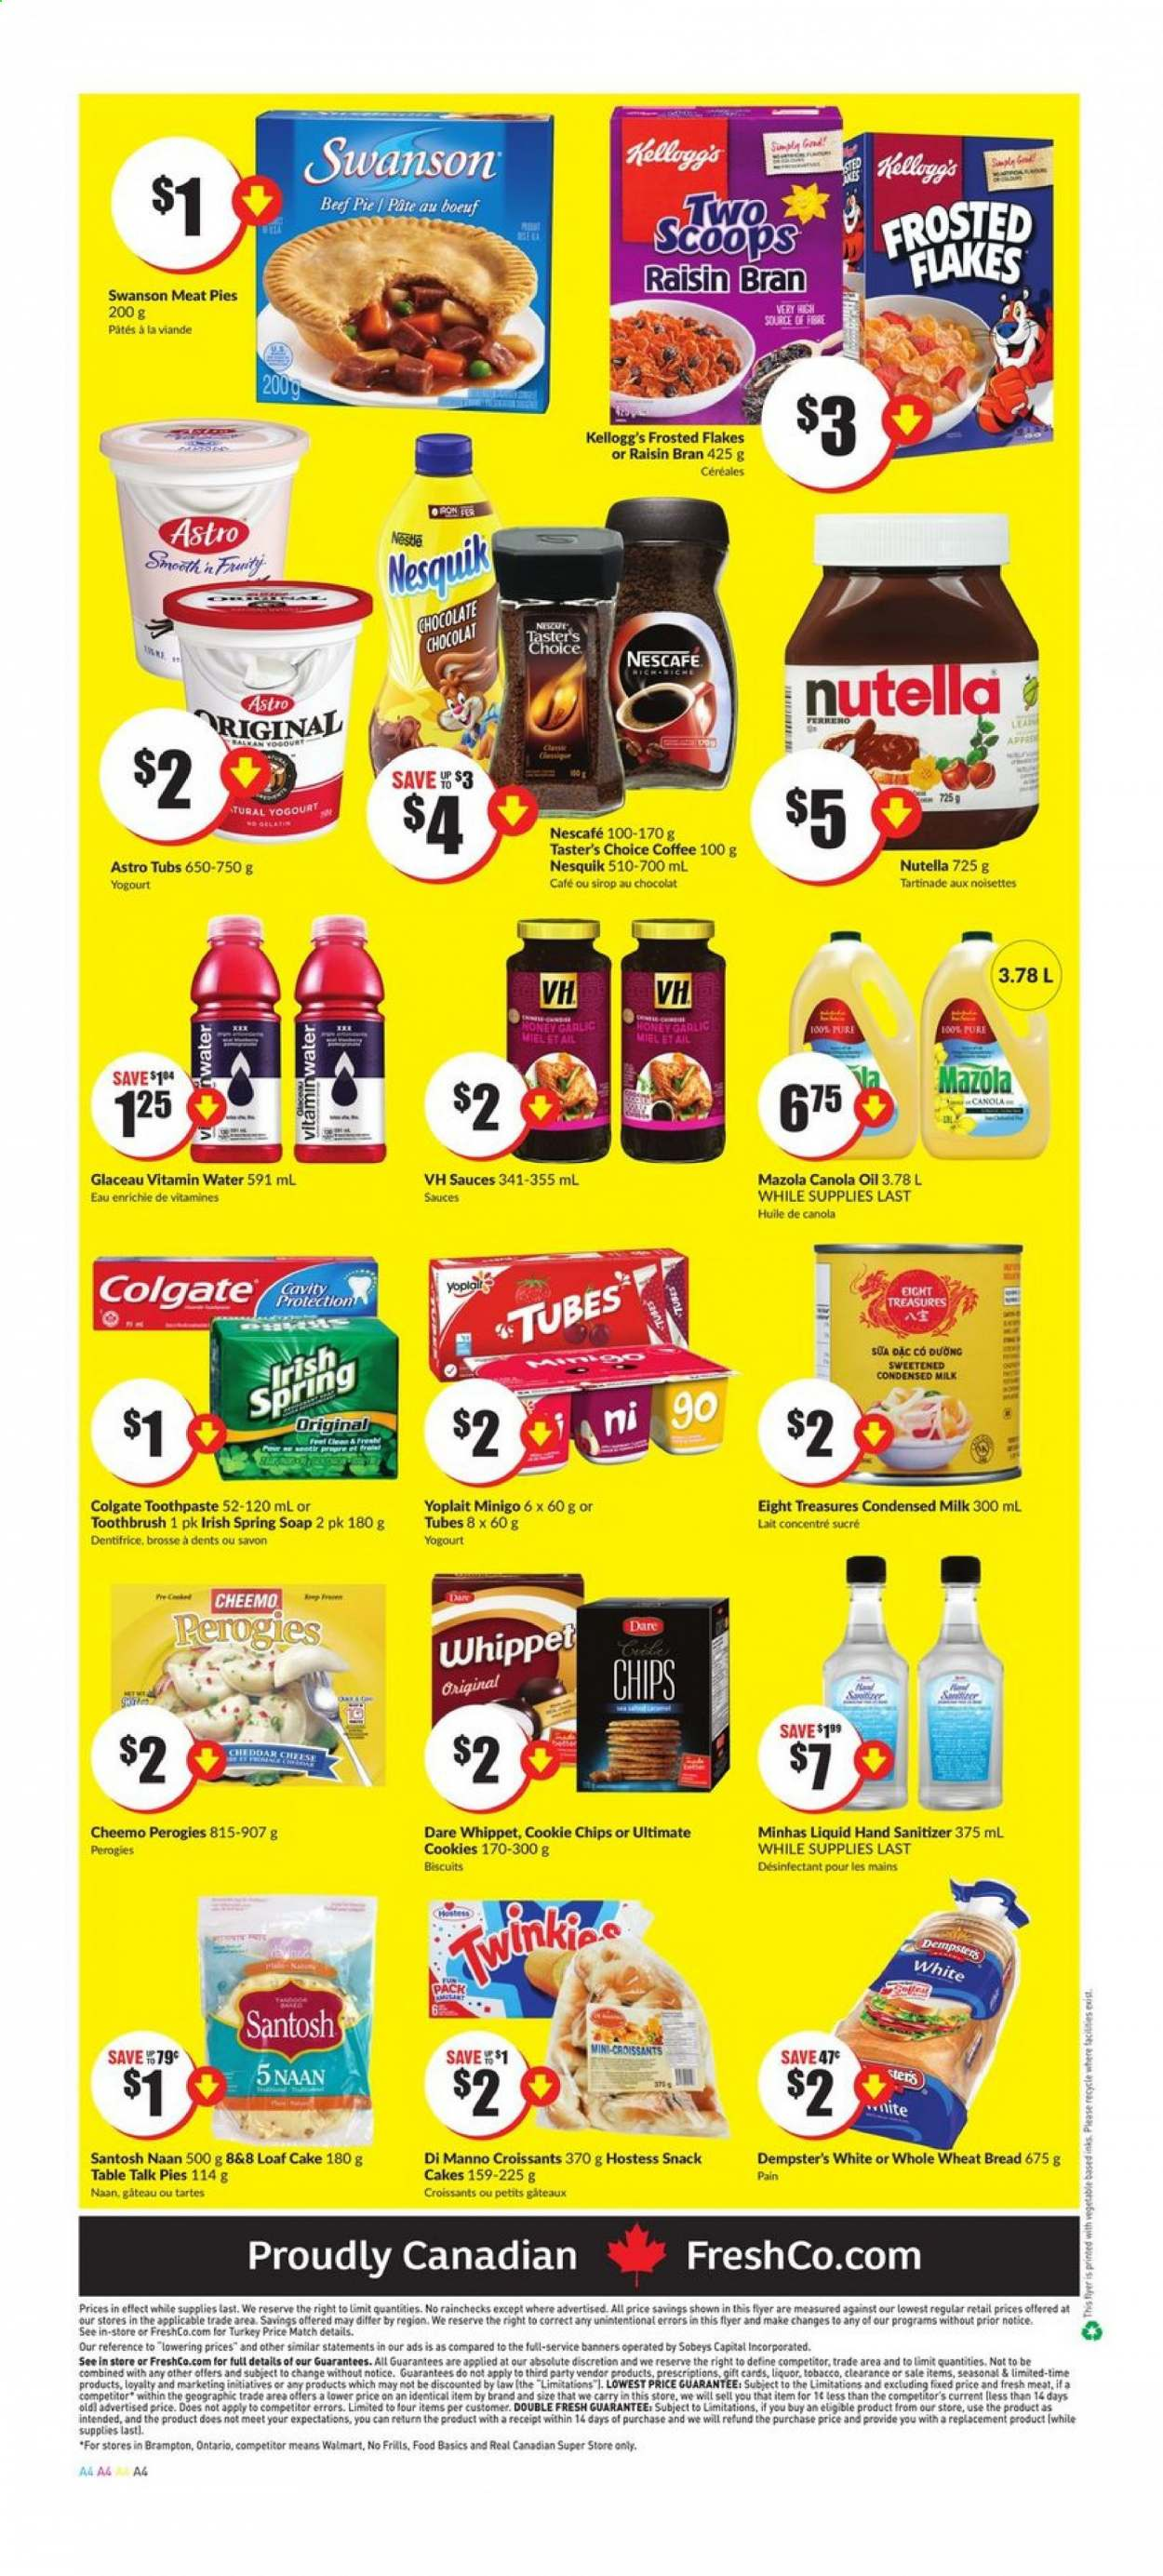 FreshCo. Flyer  - June 11, 2020 - June 17, 2020. Page 4.